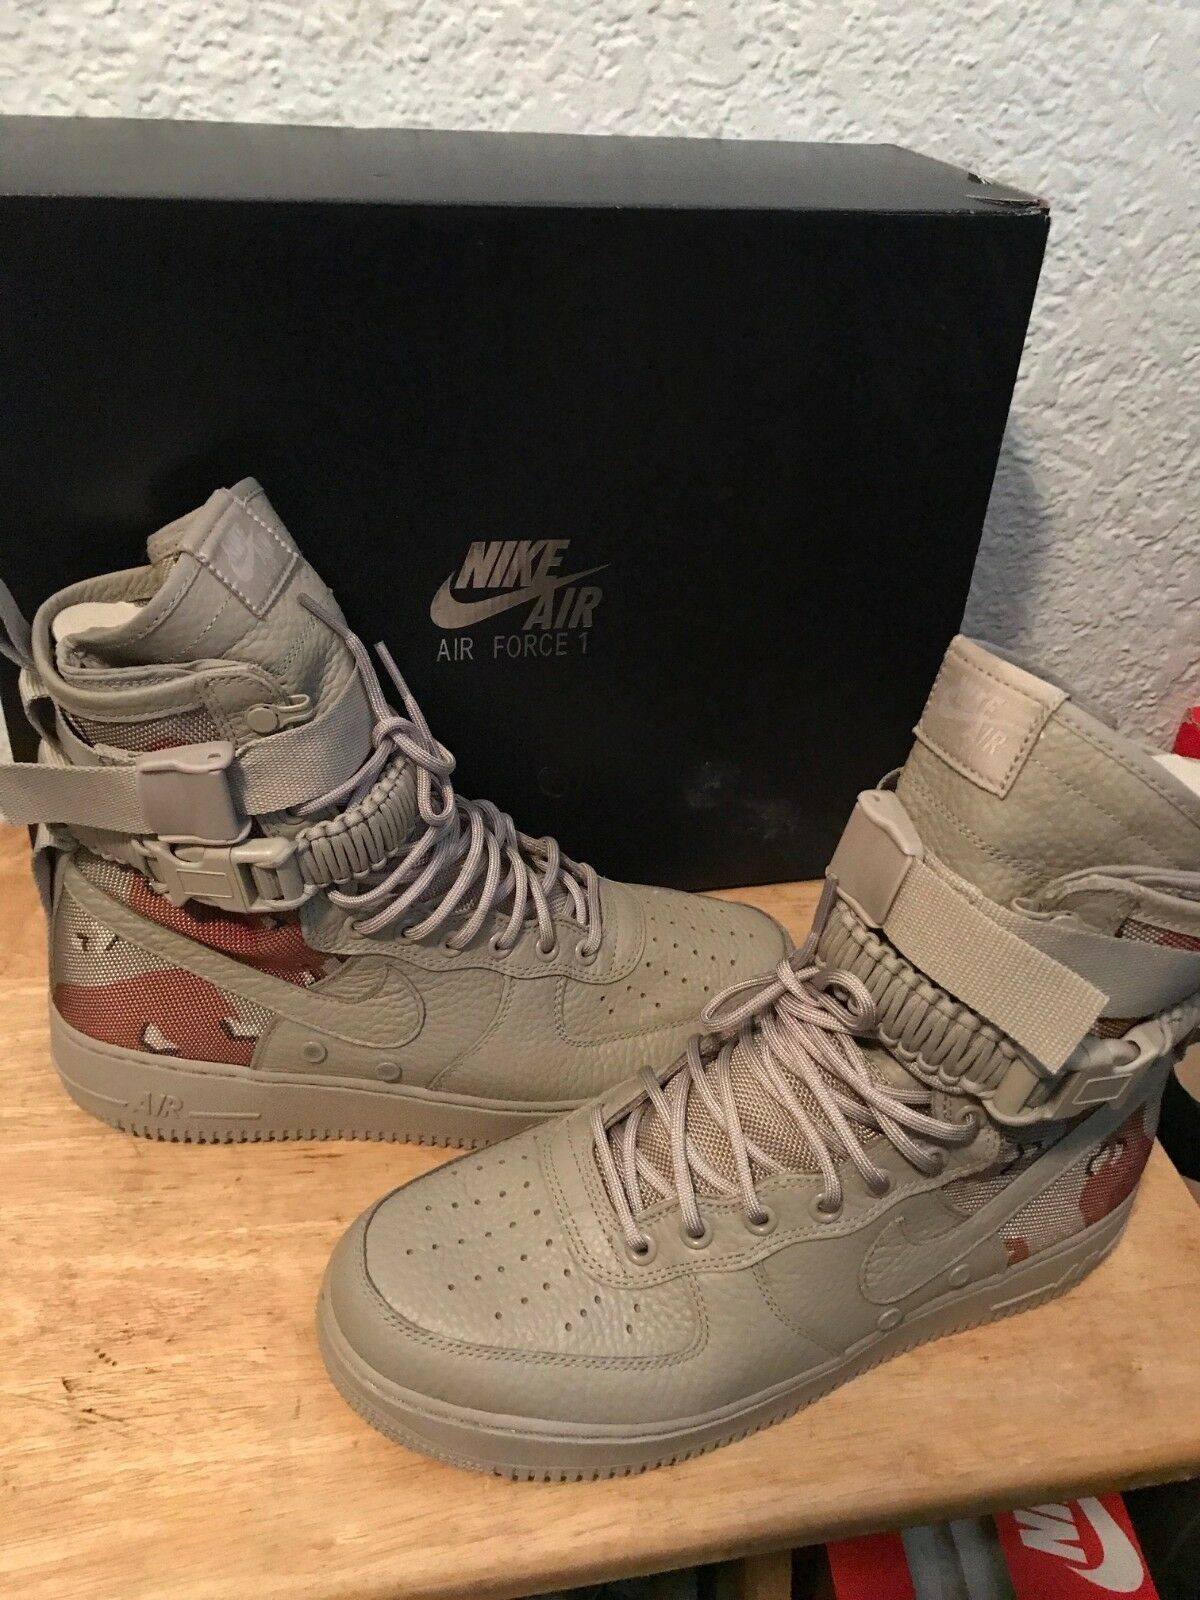 100% AUTHENTIC DS QUICKSTRIKE NIKE AIR FORCE ONE SF CAMO QUICKSTRIKE DS SIZE 10 dc066a